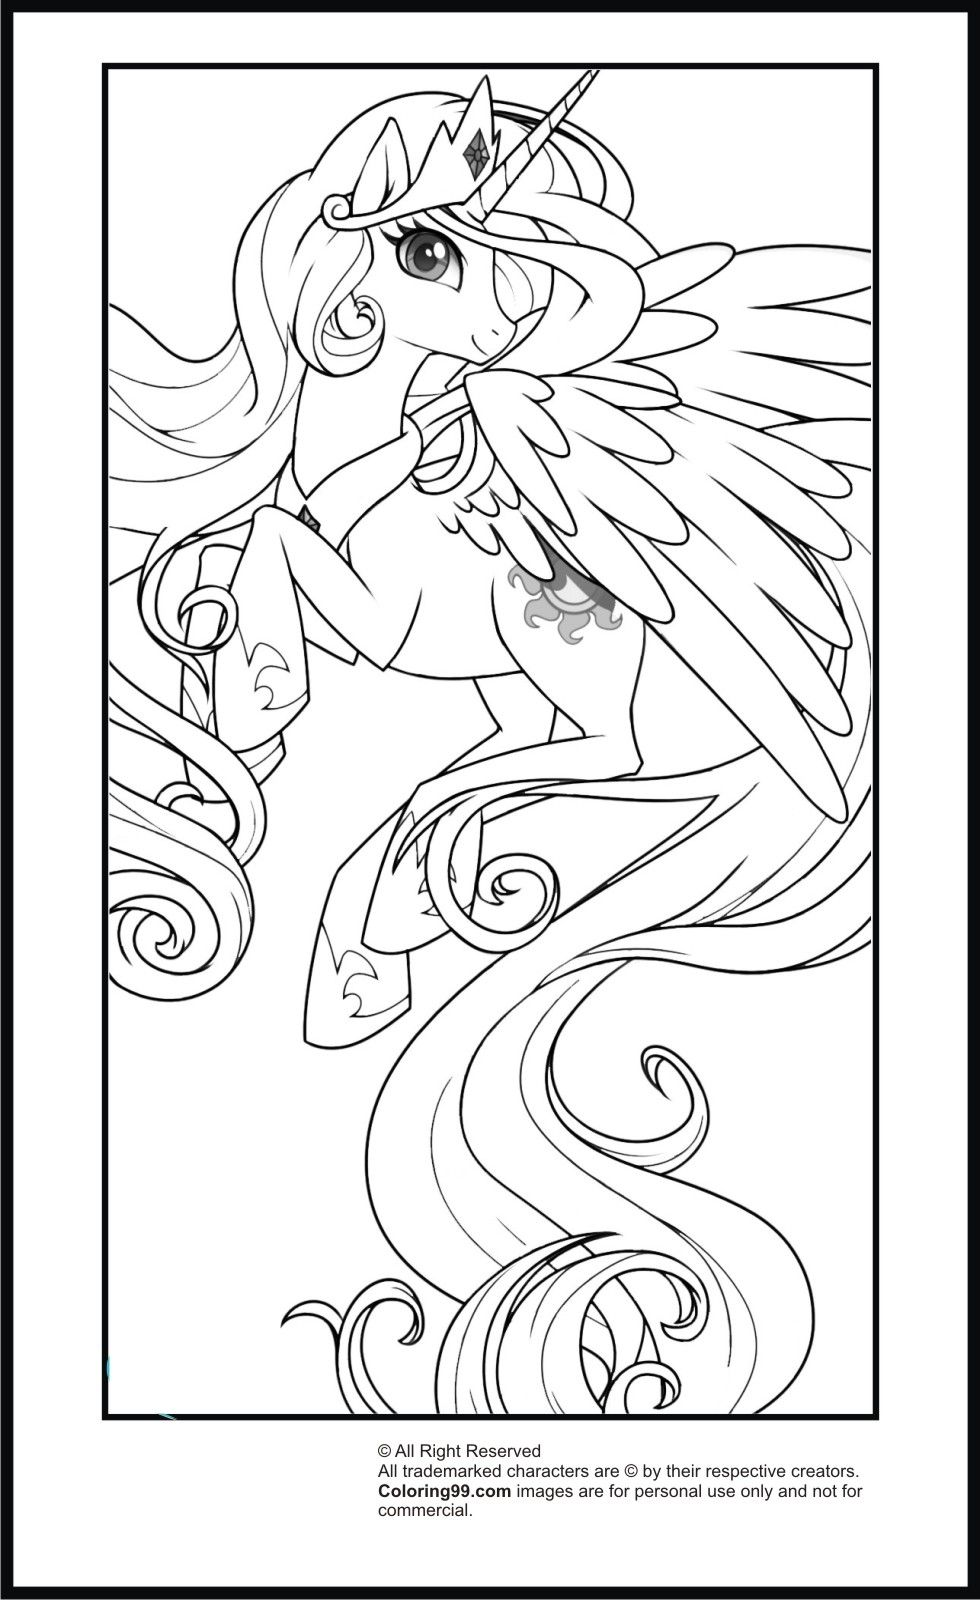 Little princess coloring pages - My Little Pony Princess Celestia Coloring Pages